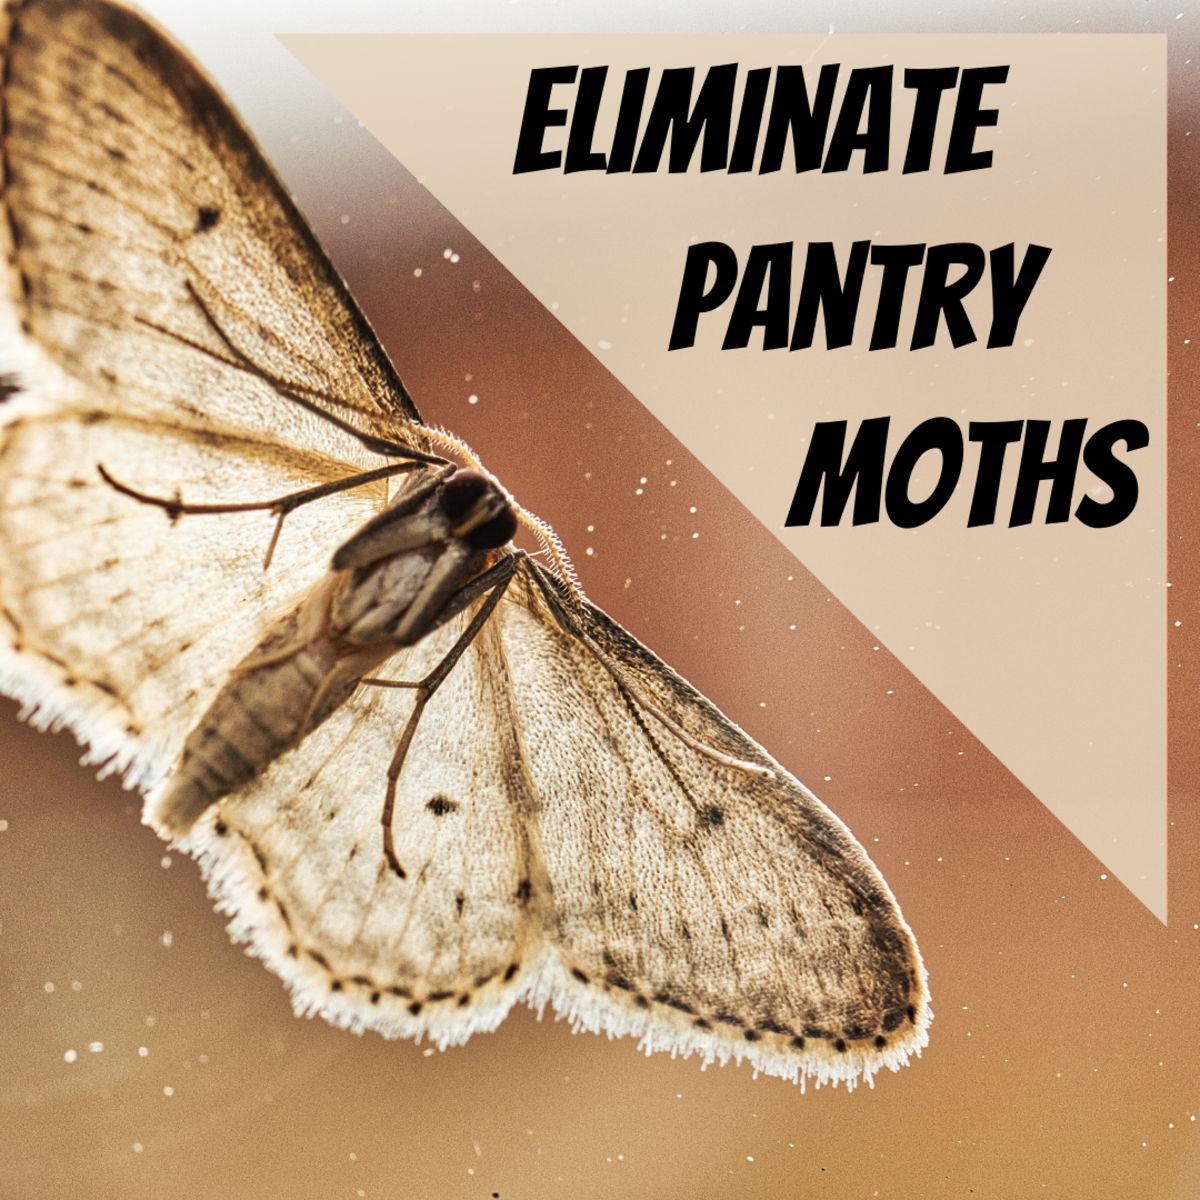 This article provides step-by-step instructions to help you eliminate pantry moths from your house and prevent a re-infestation